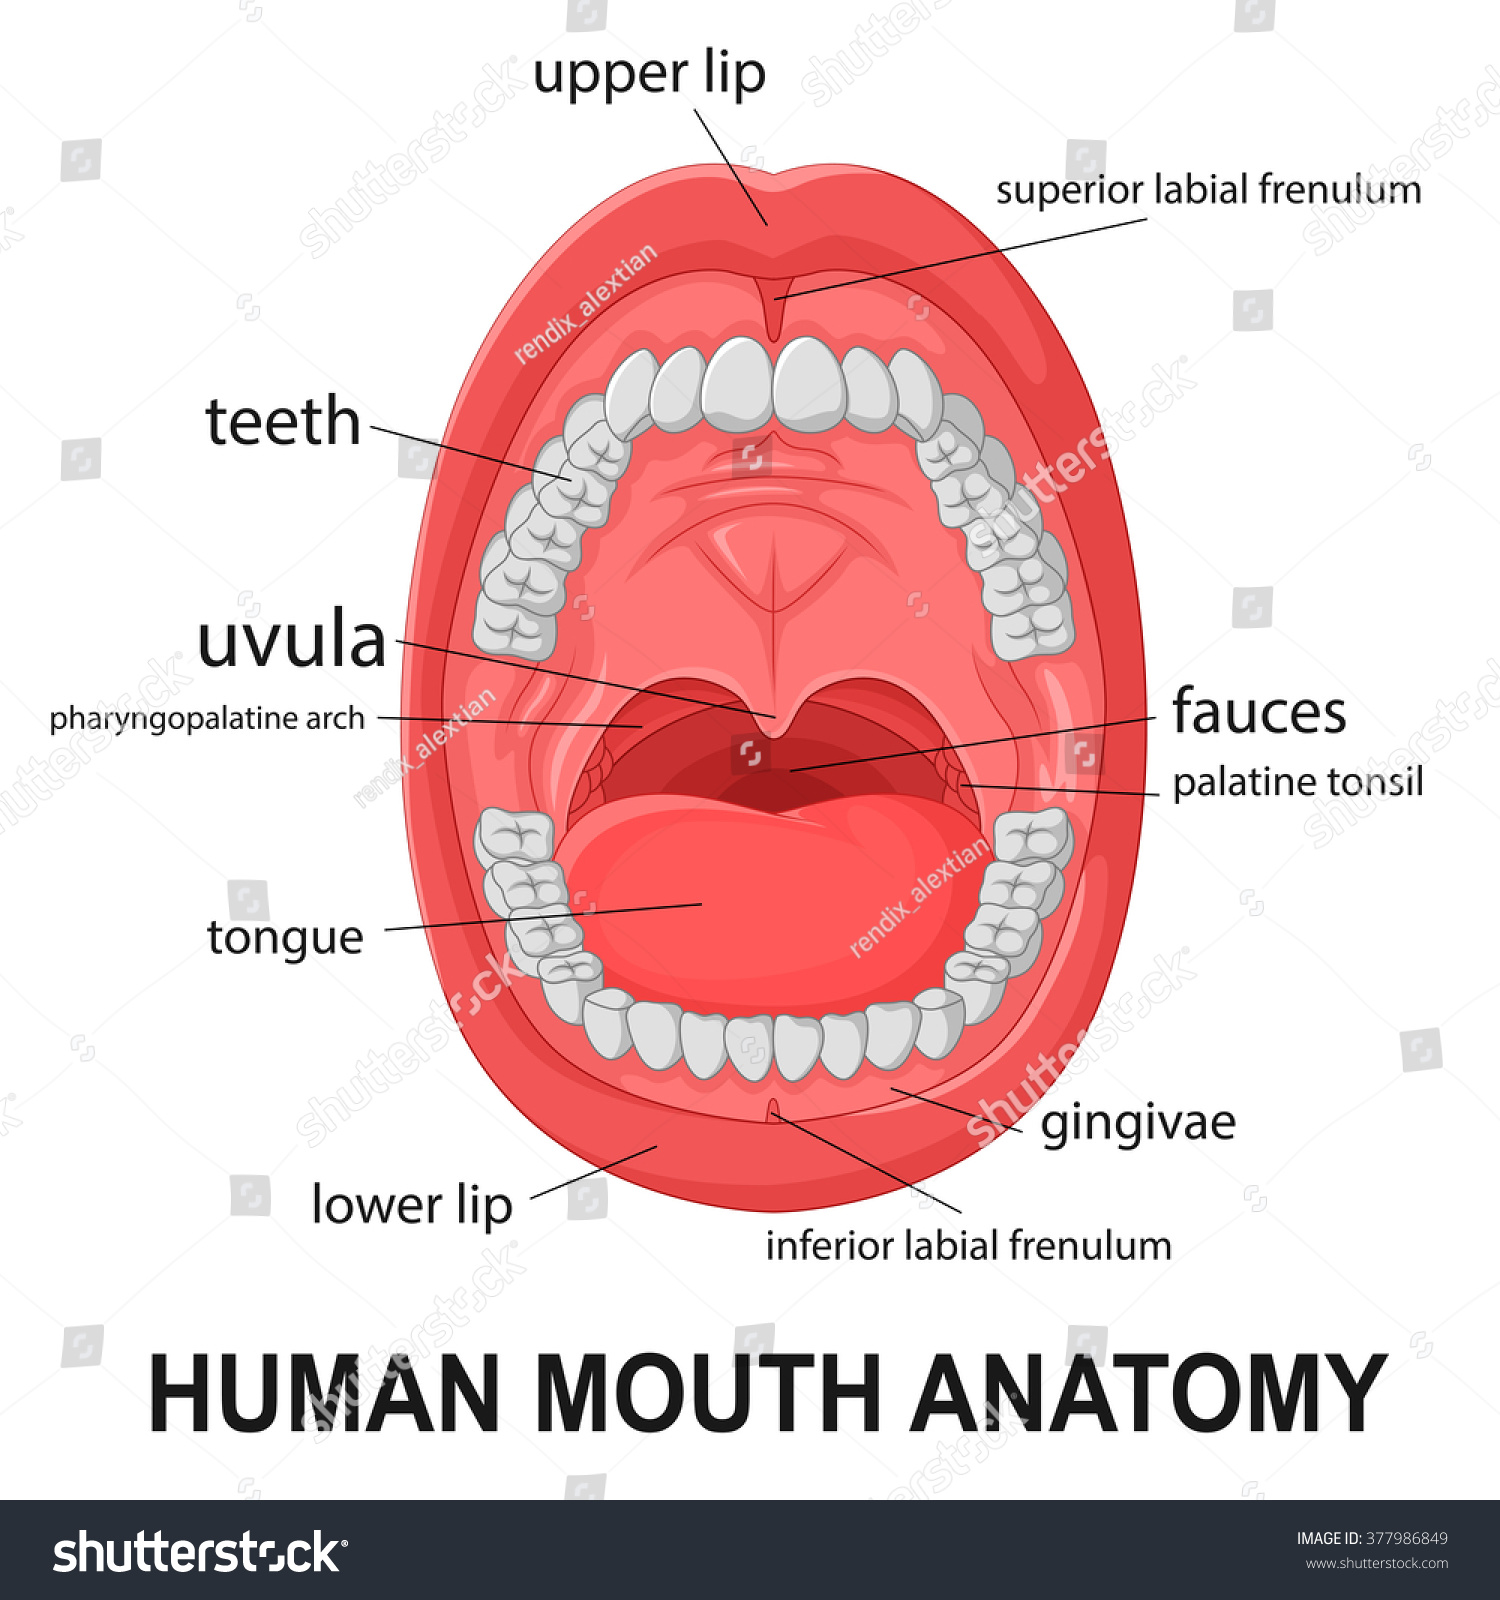 Human Mouth Anatomy Open Mouth Explaining Stock Vector (Royalty Free ...